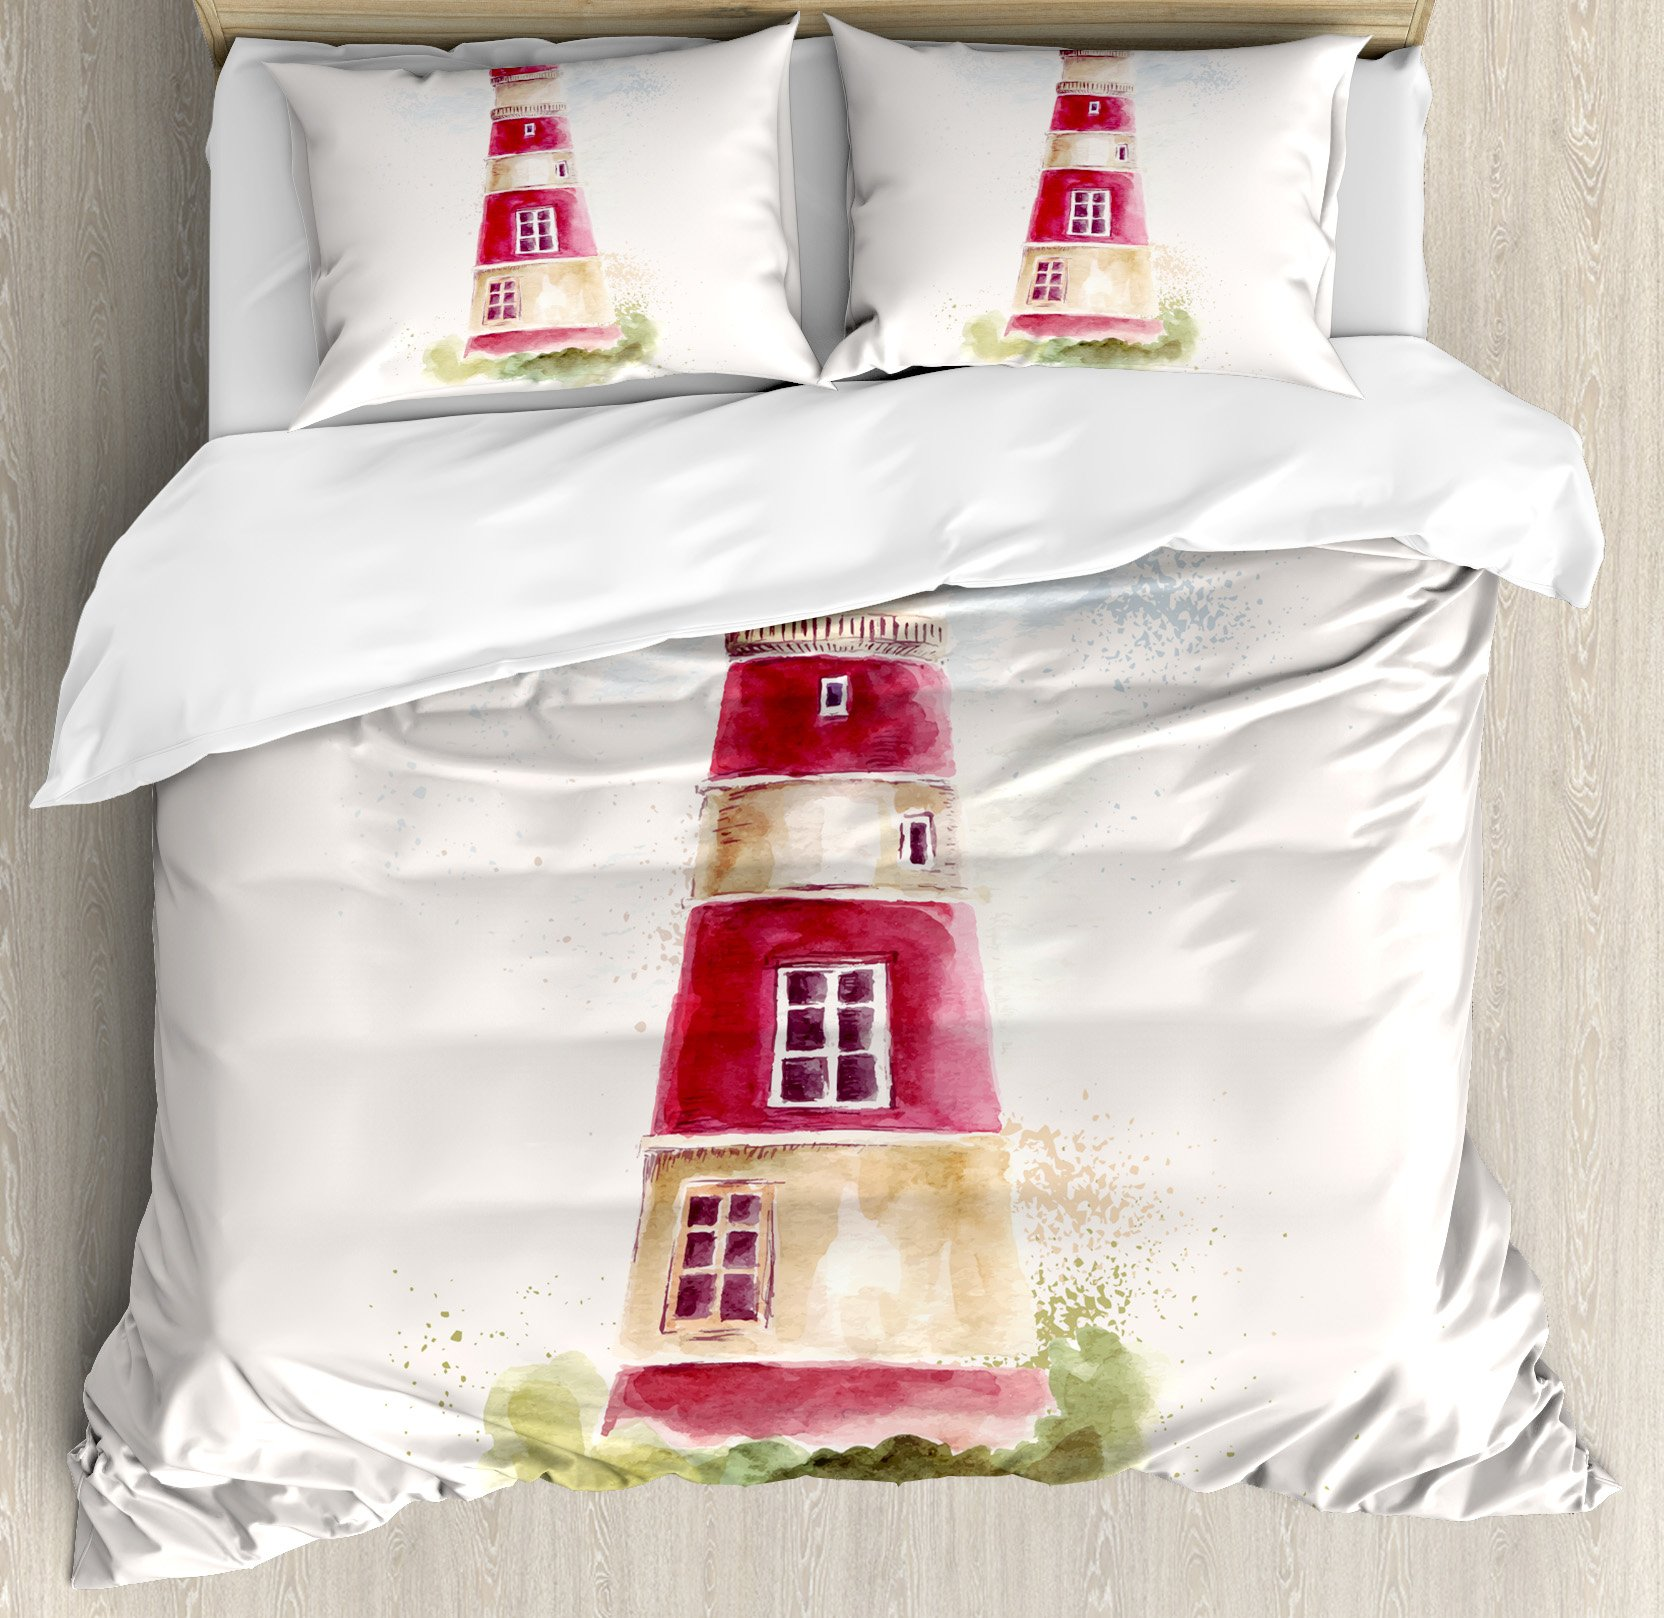 Lighthouse Duvet Cover Set King Size by Ambesonne, Watercolor Lighthouse Print Pastel Faded Vintage Lettering Windows Grass Clouds, Decorative 3 Piece Bedding Set with 2 Pillow Shams, Multicolor by Ambesonne (Image #1)